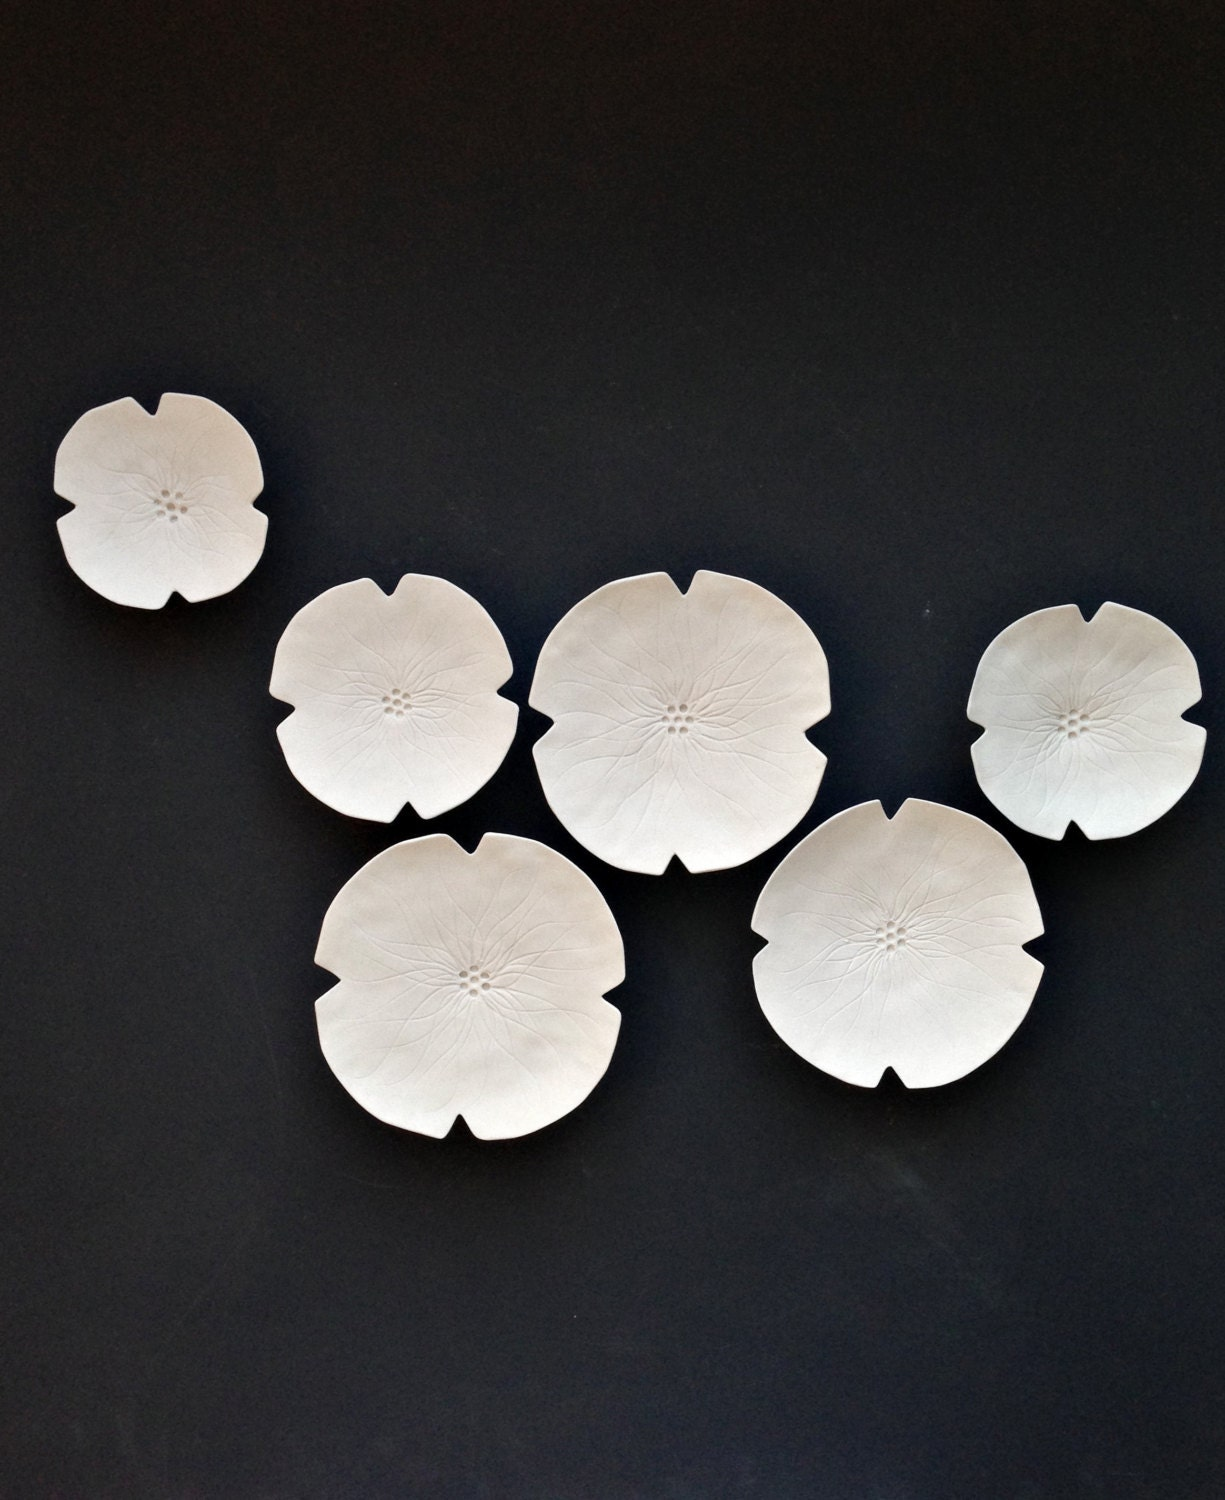 Ceramic Flower Wall Decor Target : Ceramic flower wall decor choice image home